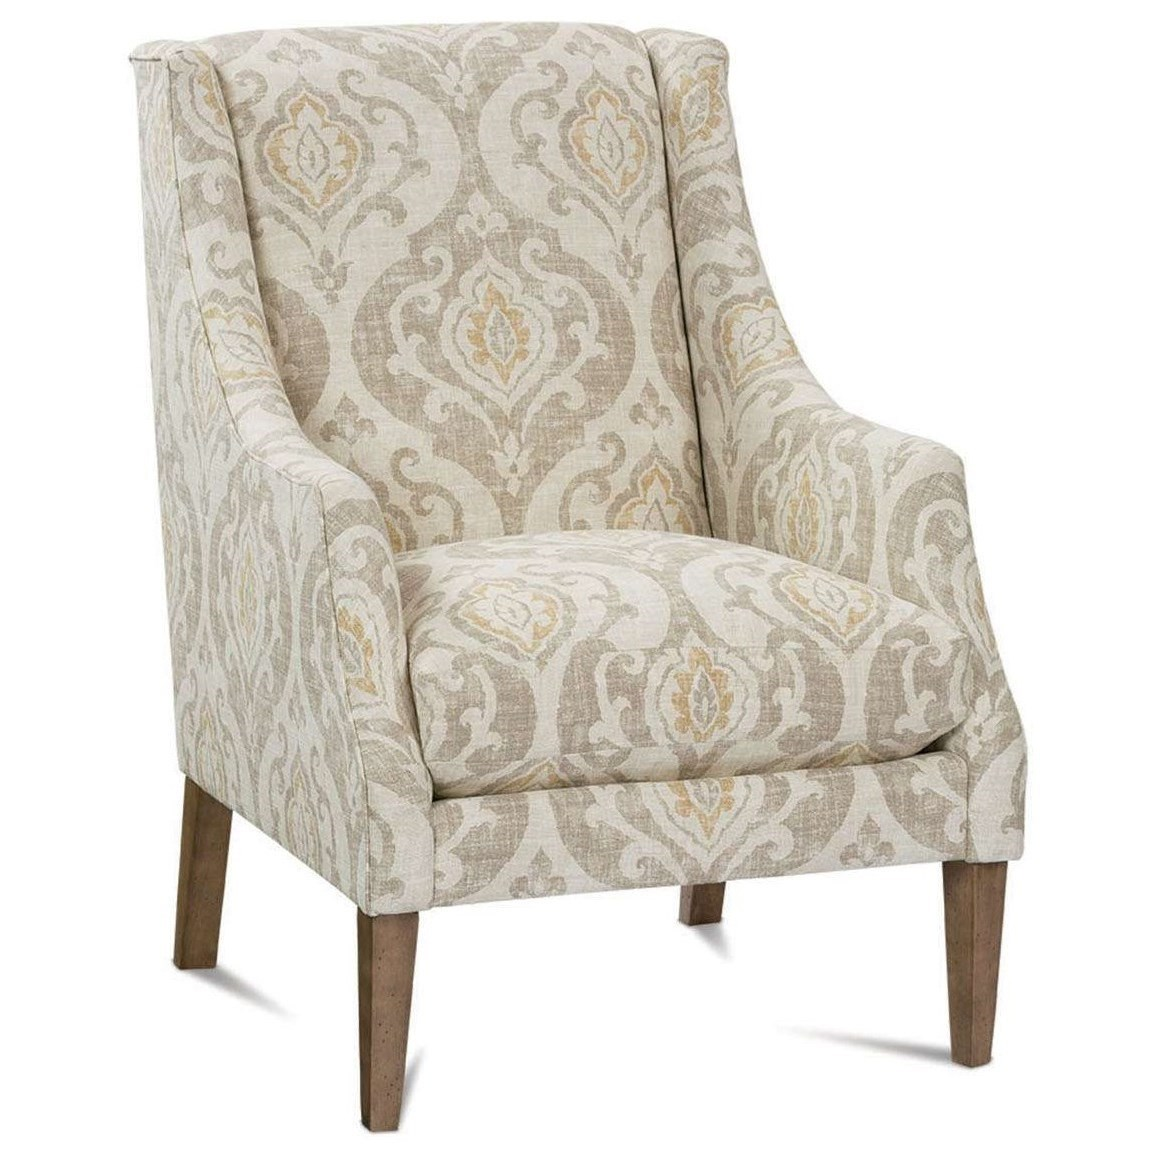 Robin Bruce Accent ChairsJackson Upholstered Chair